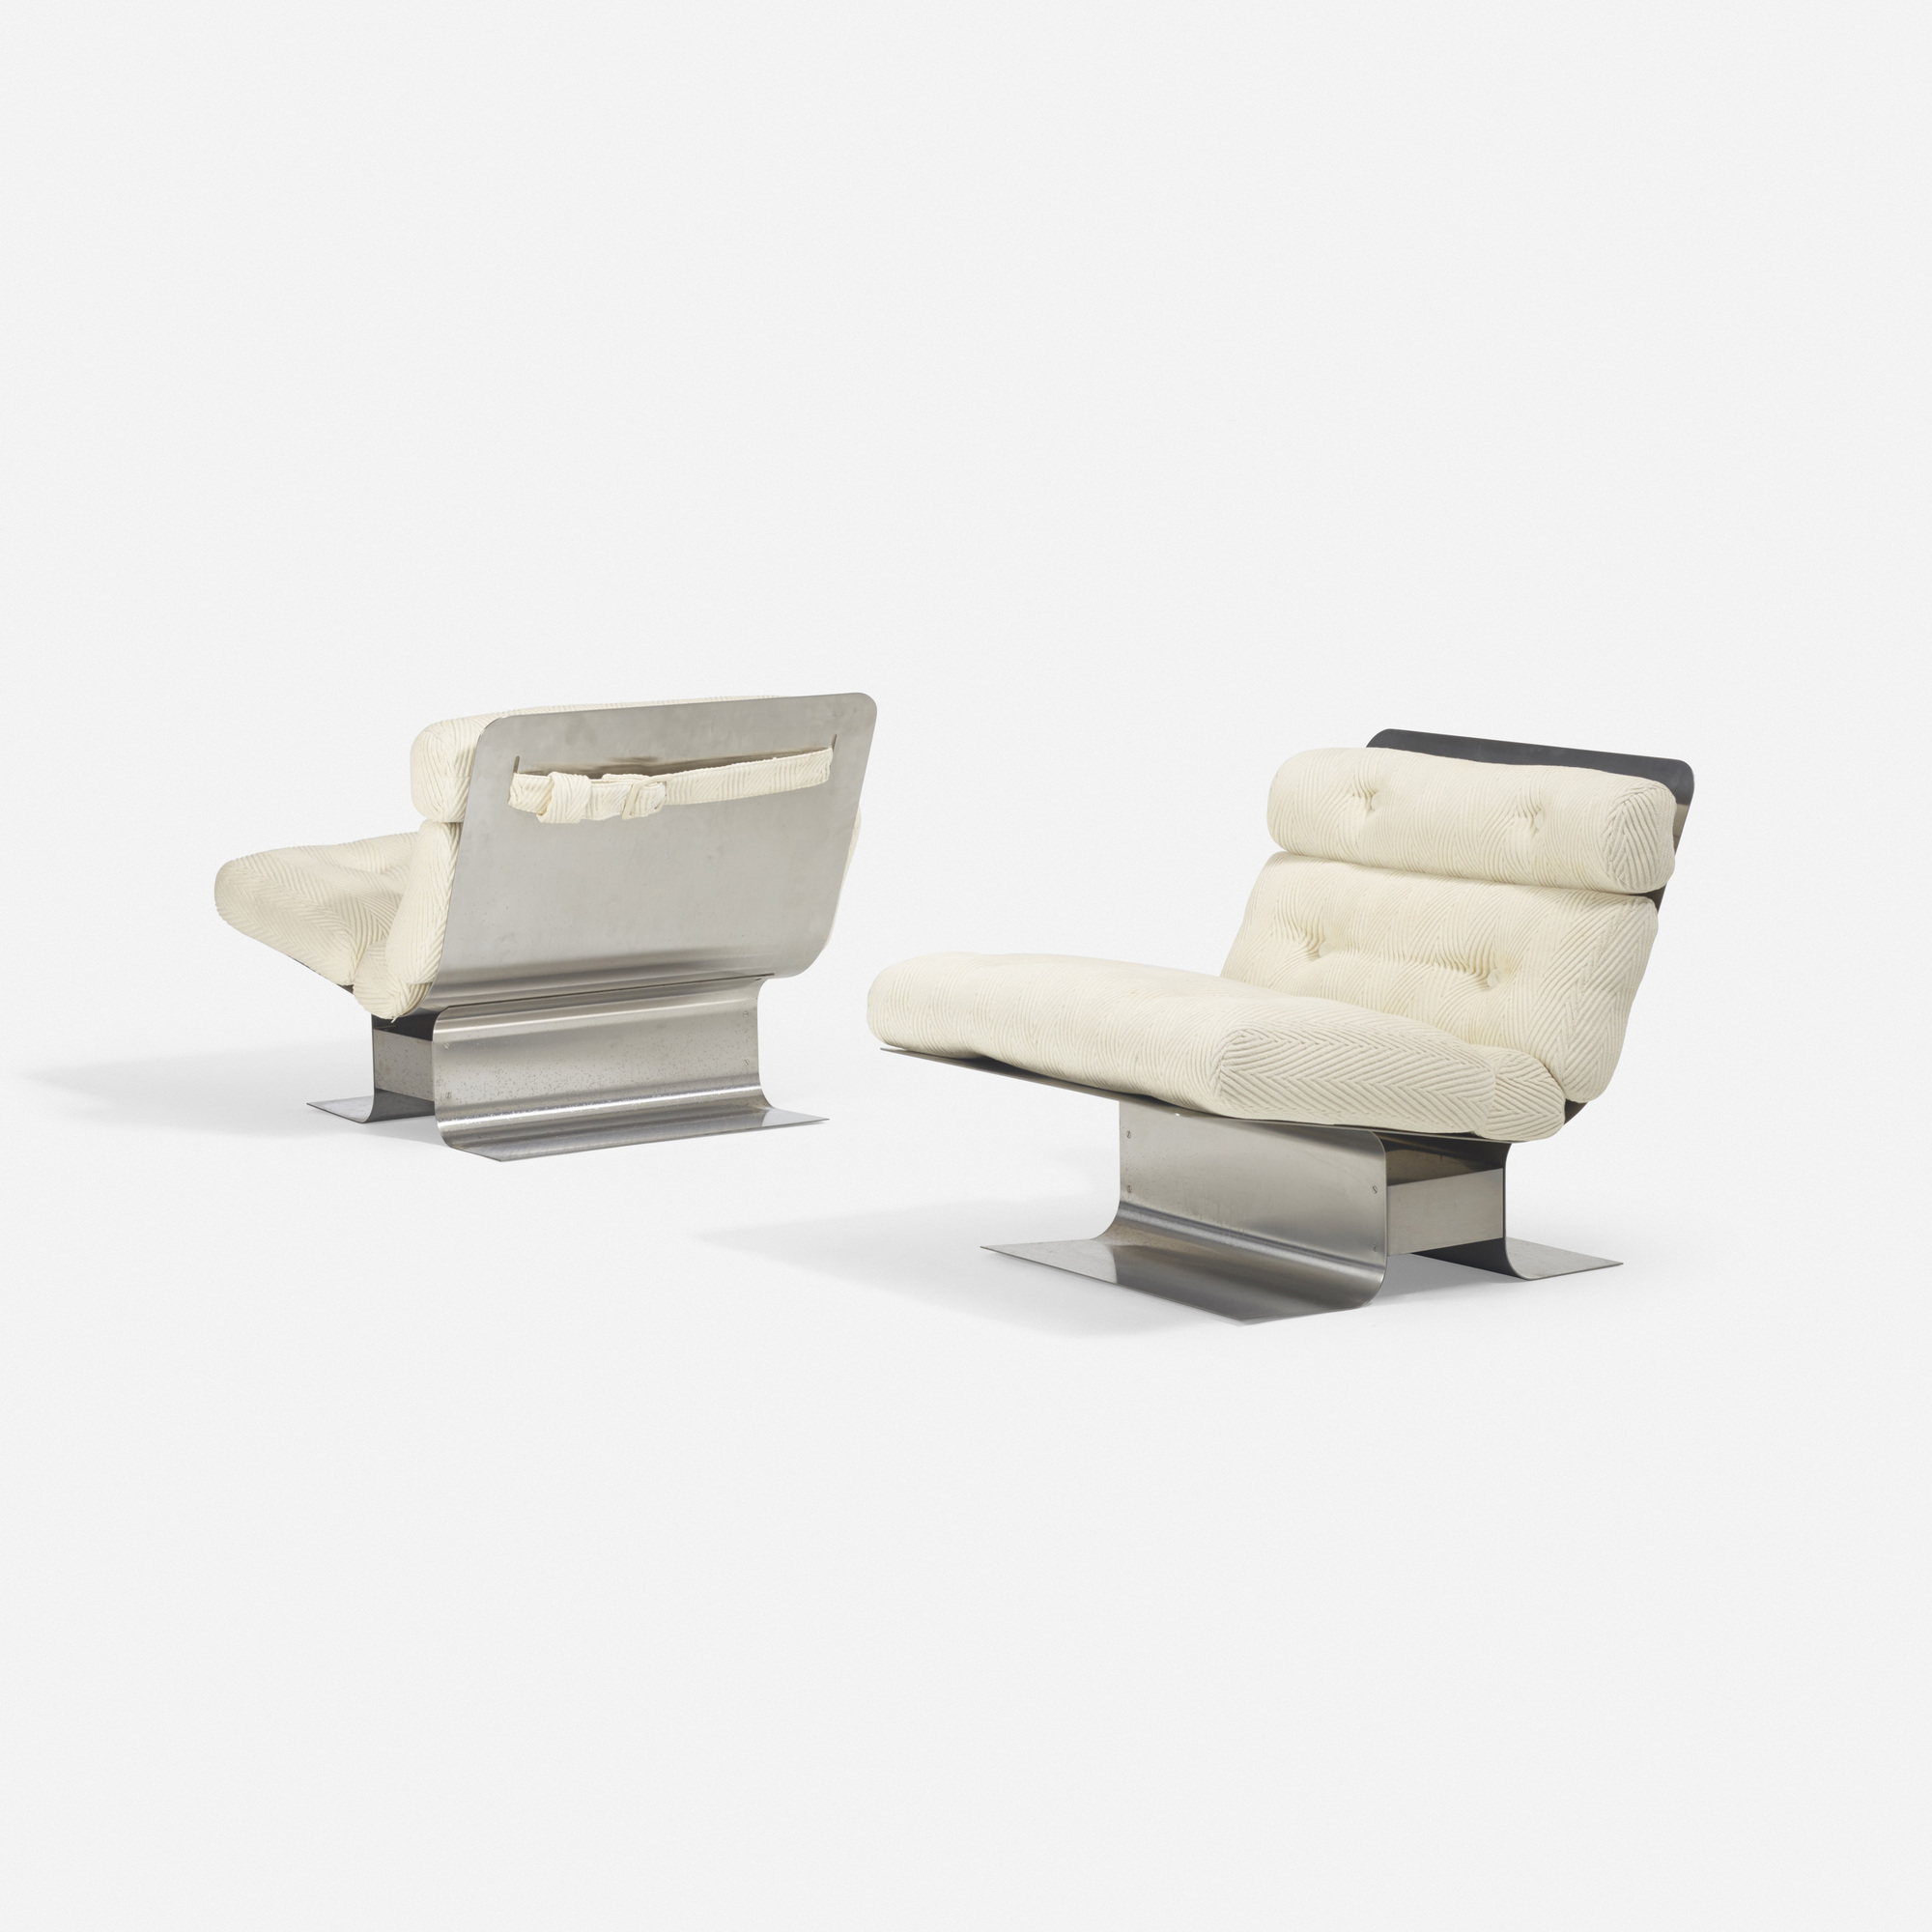 328: François Monnet / lounge chairs, pair (4 of 5)